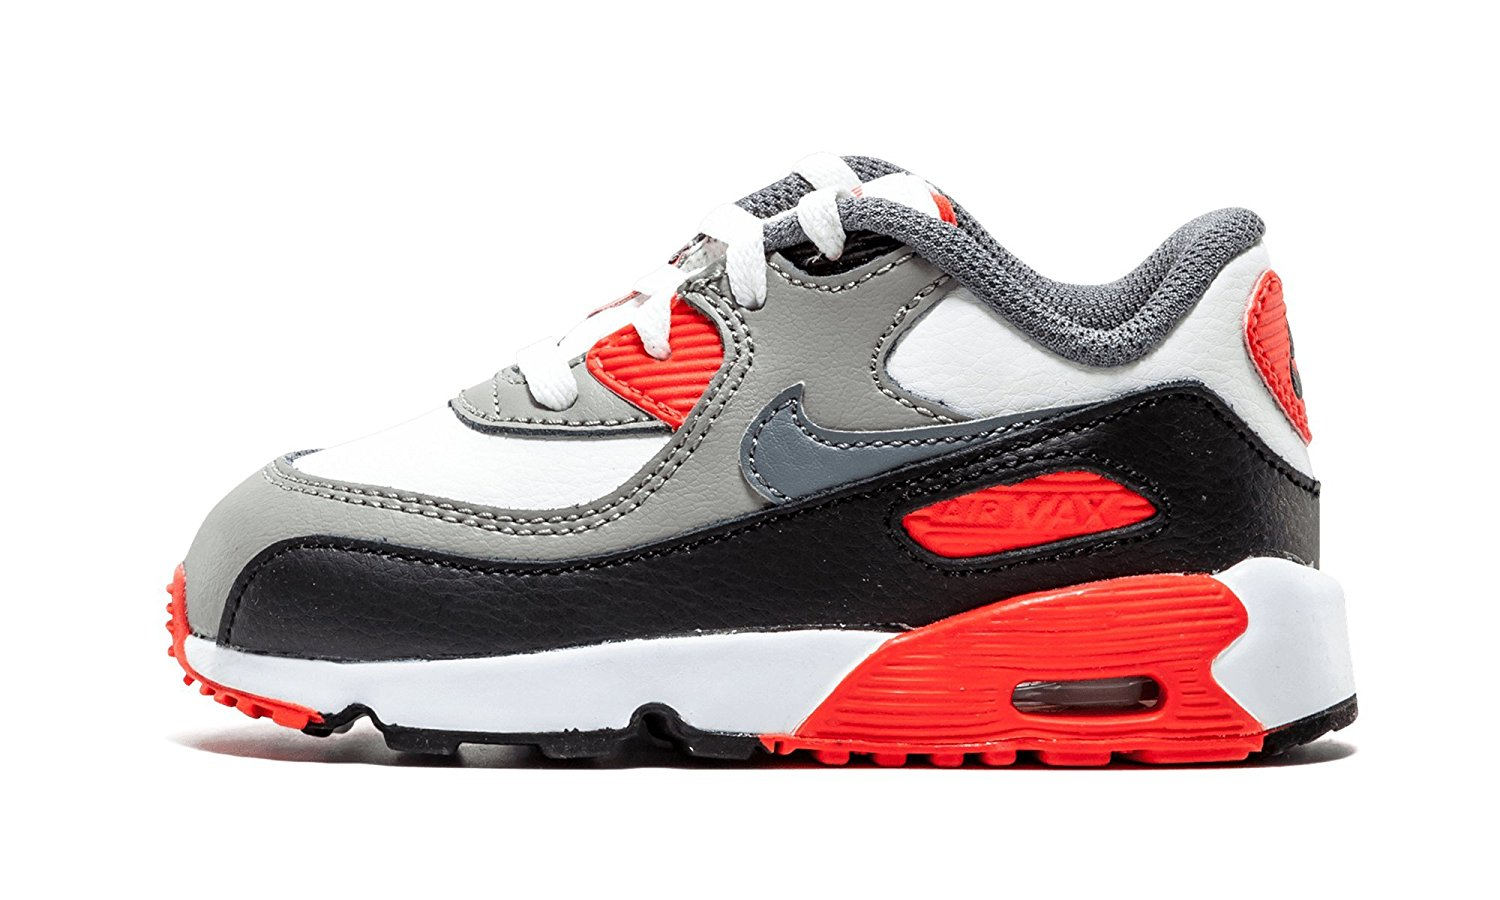 0b2f83bd9c1 Buy Nike air max 90 LTR (TD) running shoes in Cheap Price on Alibaba.com